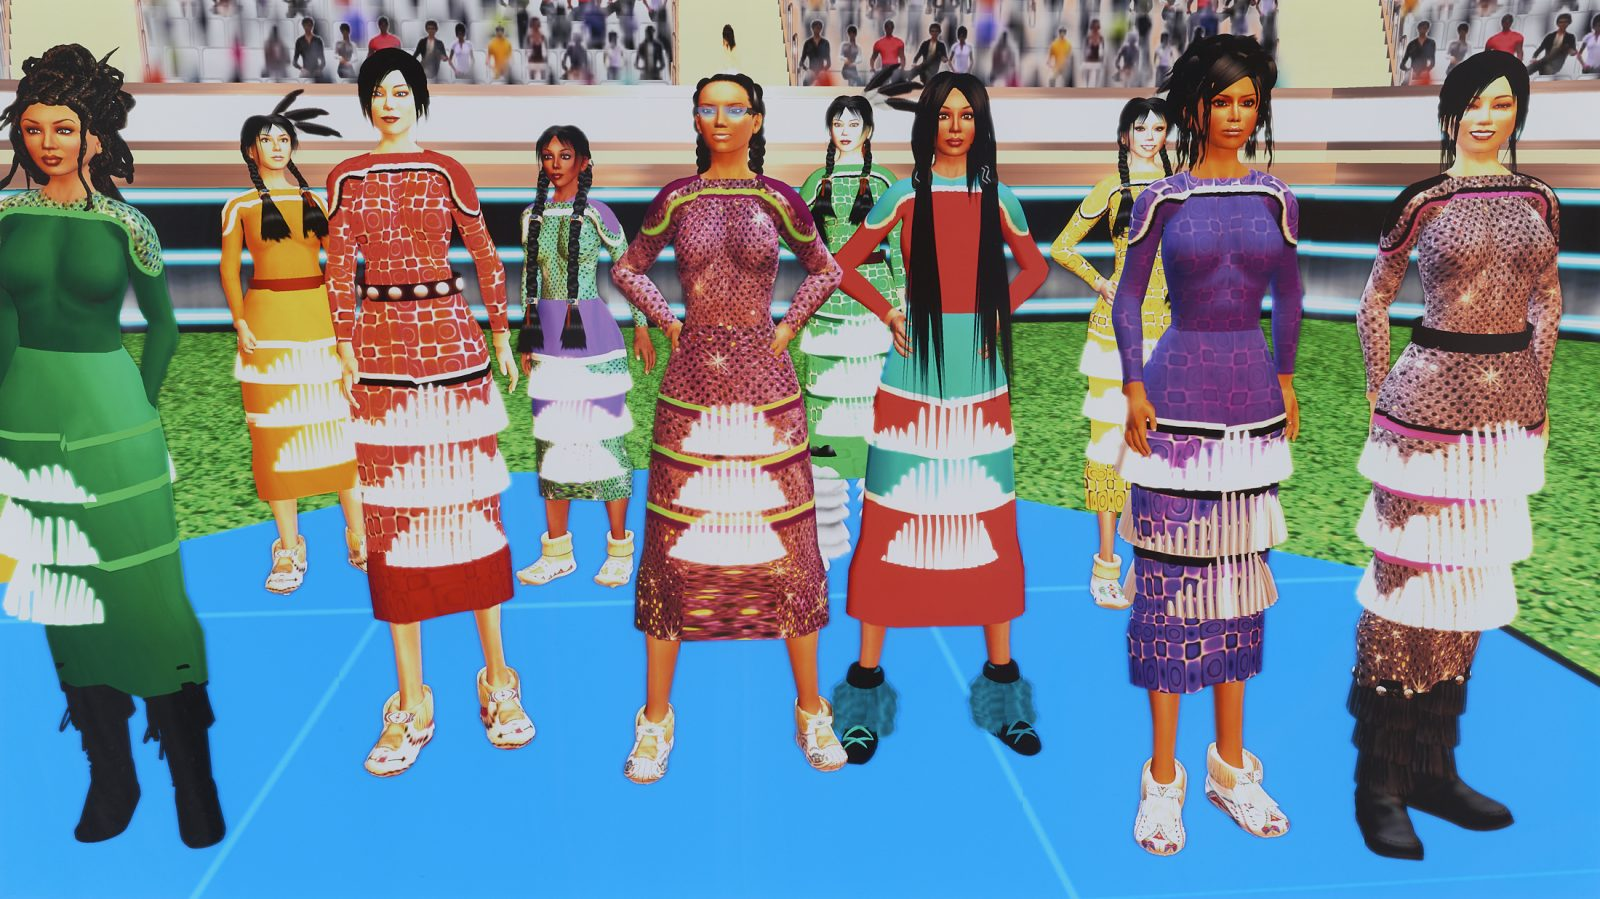 Jingle Dancers Assembled